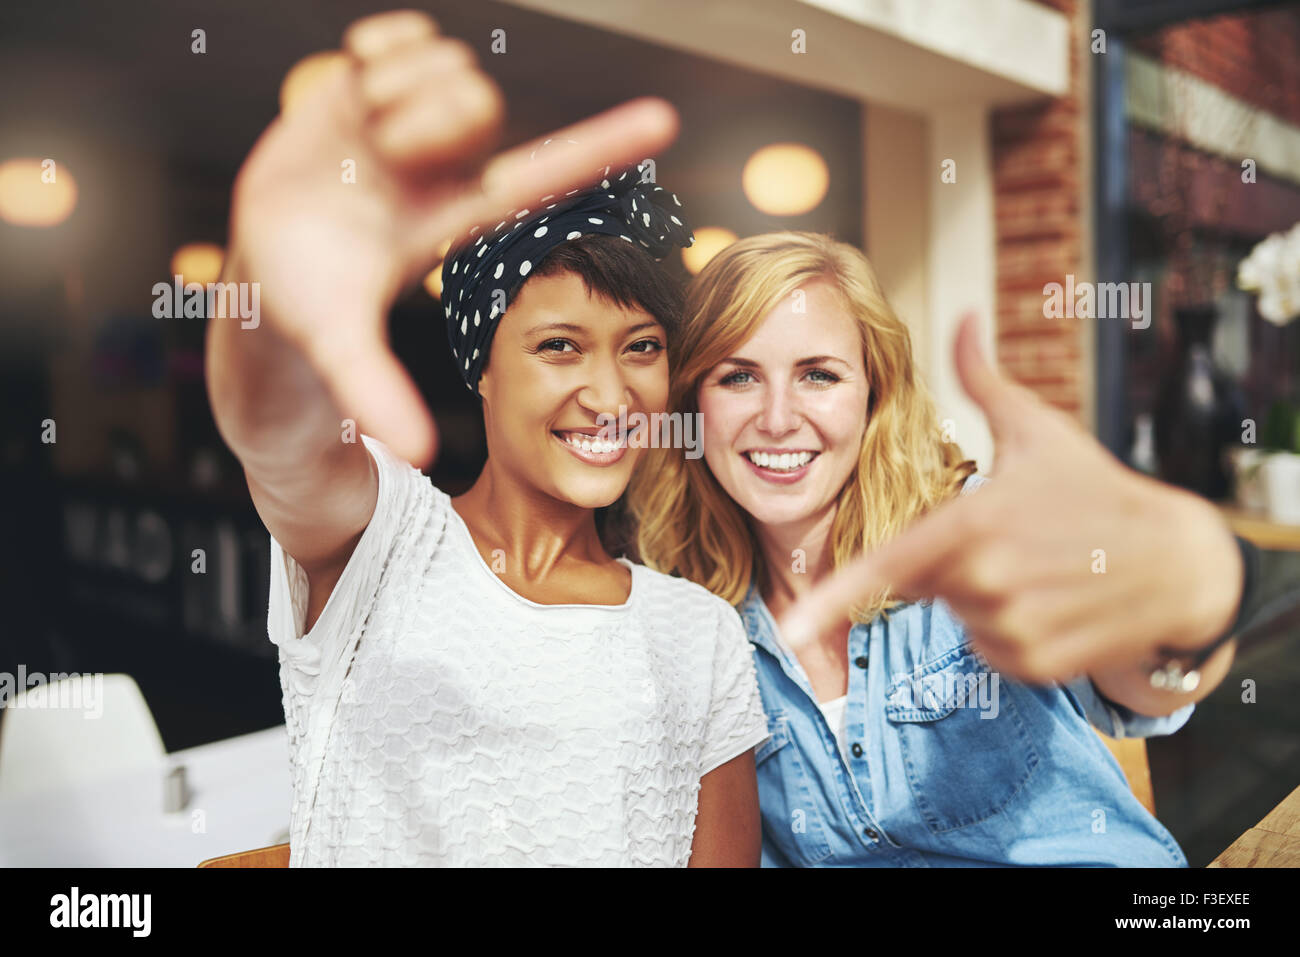 Fun young ladies framing their faces with their fingers in a creative self portrait as they sit together relaxing - Stock Image